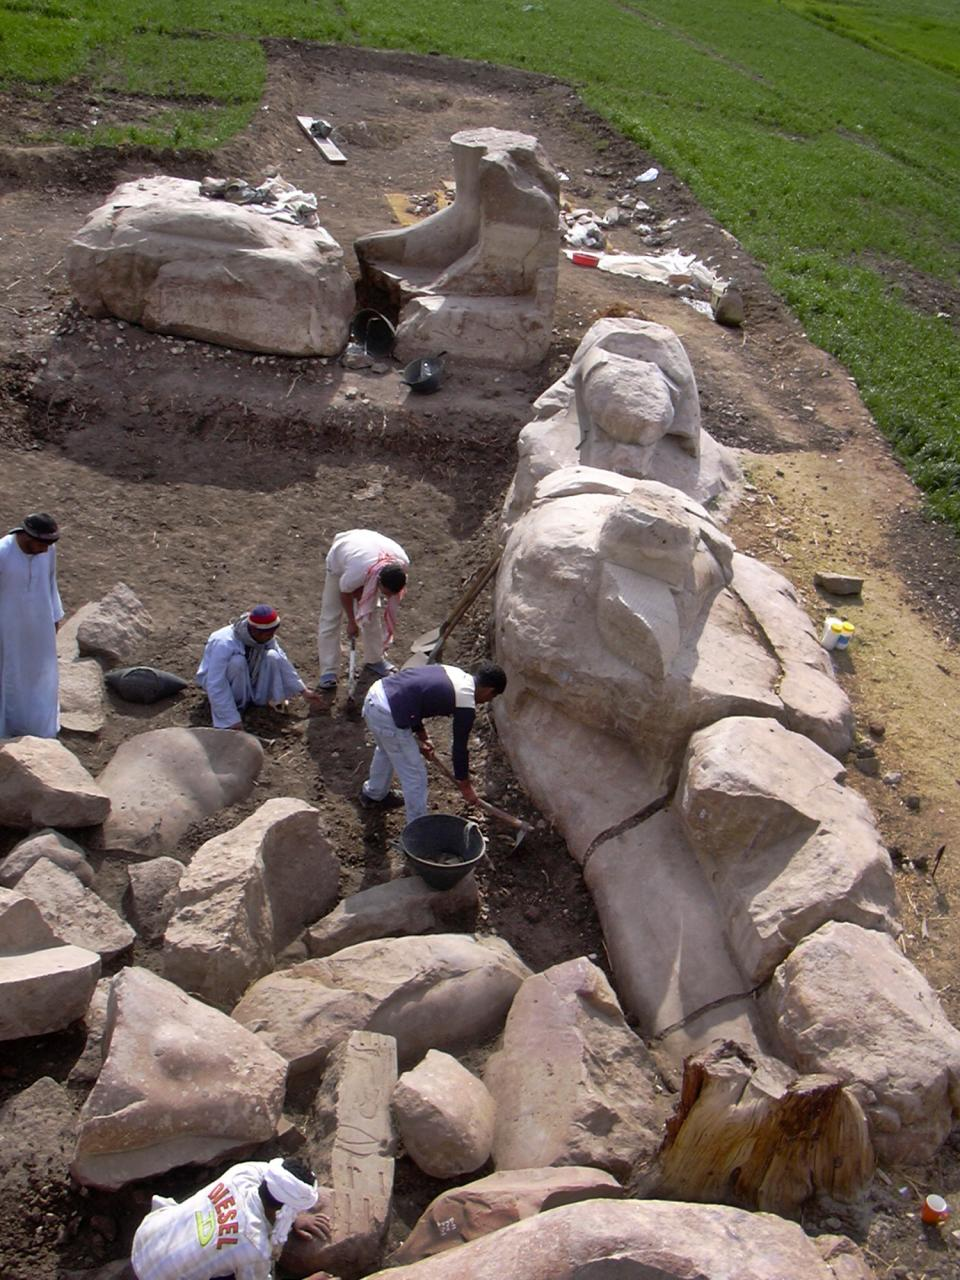 egypt the troubled giant Researchers in alexandria broke open the stone coffin to discover three bodies  submerged in rancid sewer water.